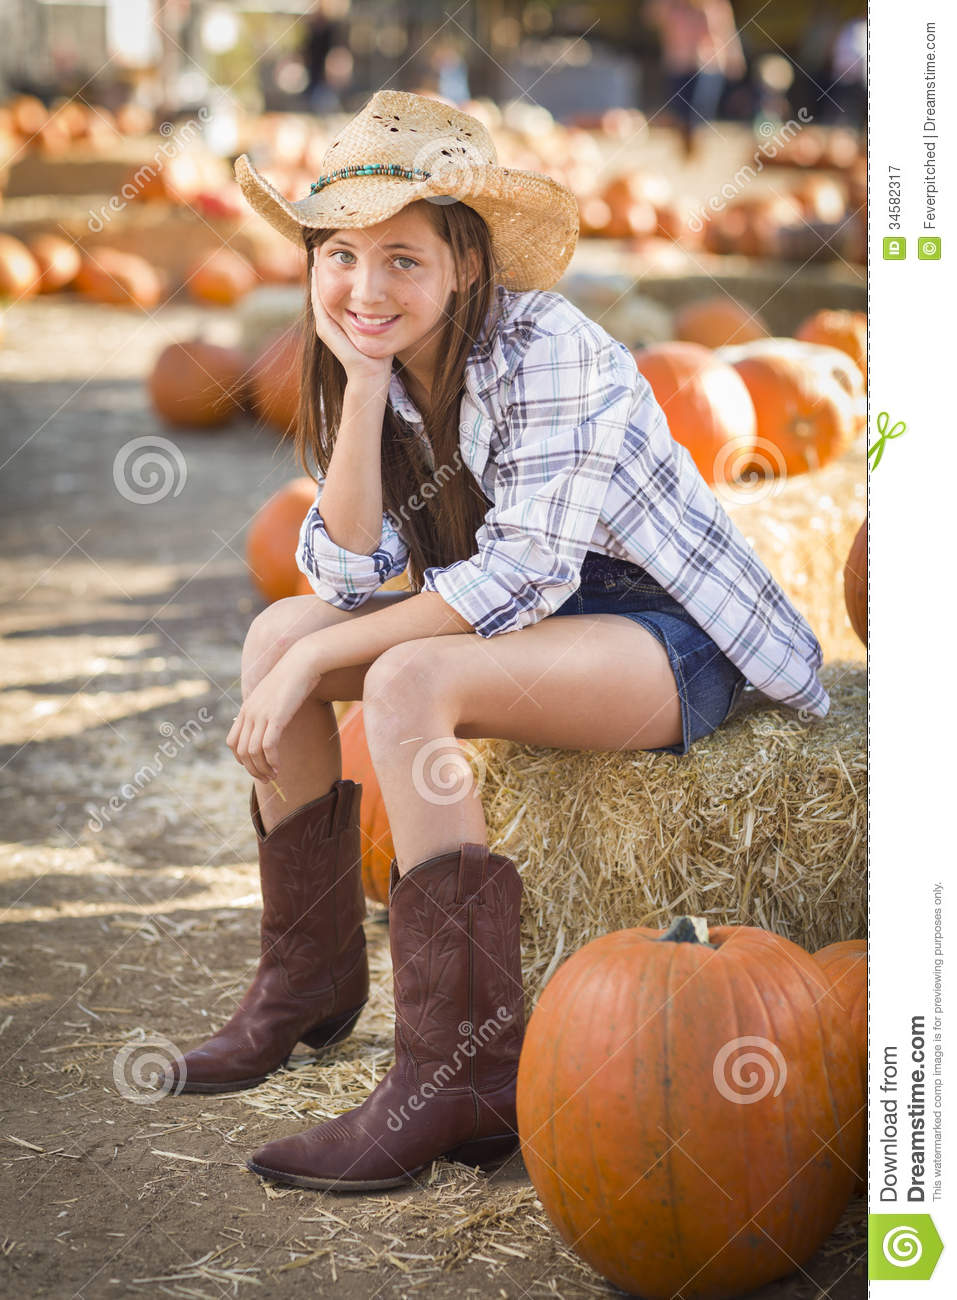 Cowgirl In Boots - Boot Hto